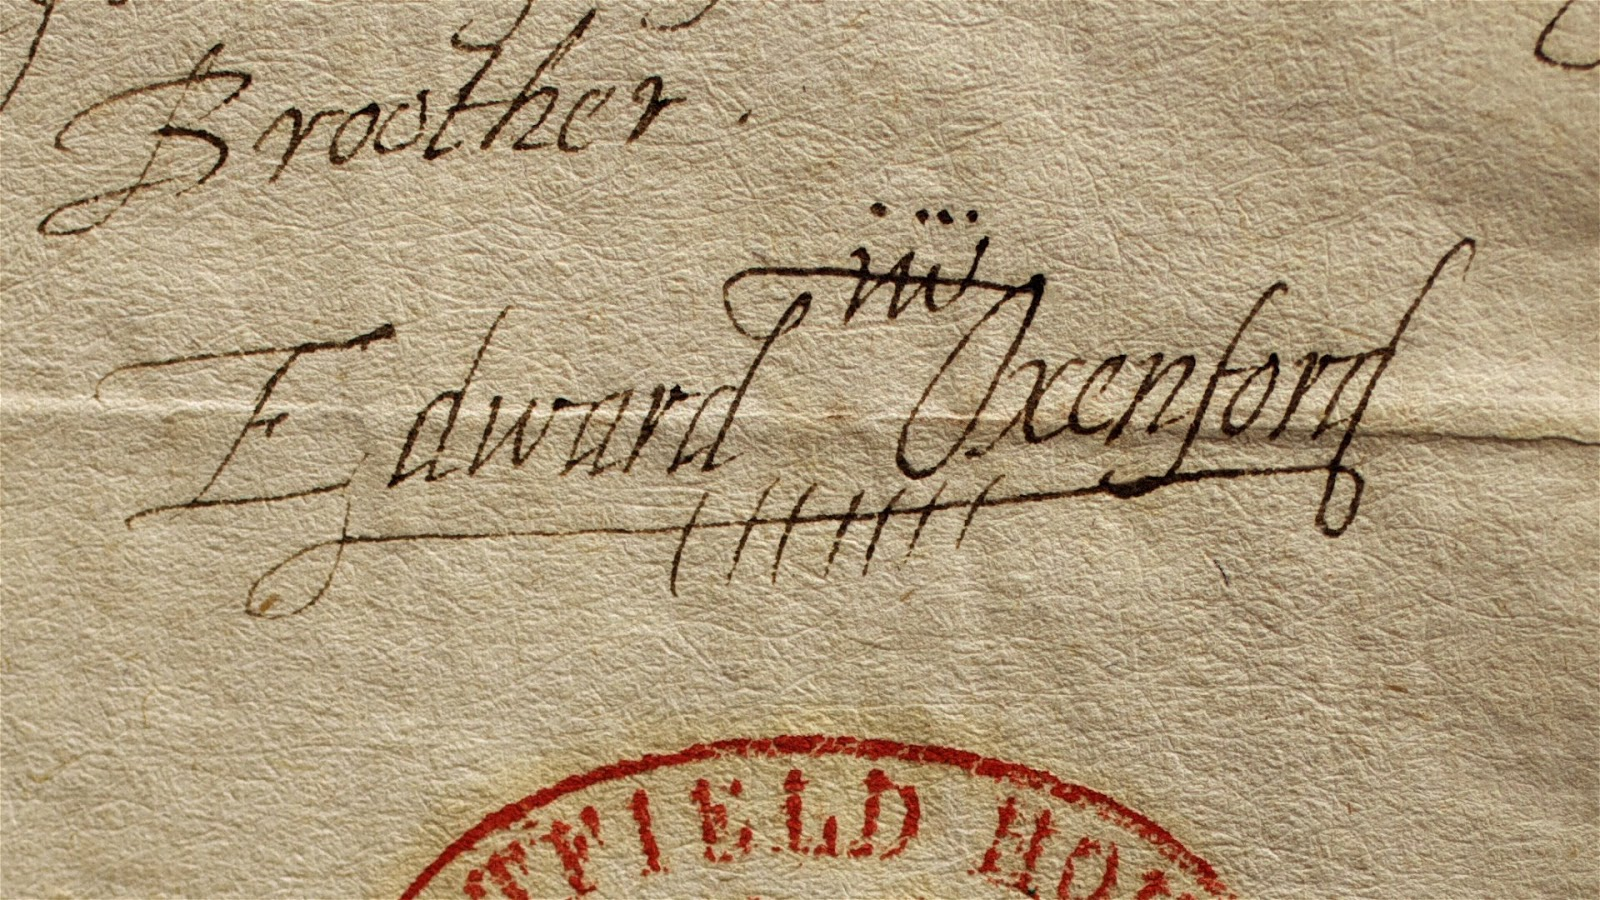 The signatures of shaksper and shakespeare hank for Tudor signatures